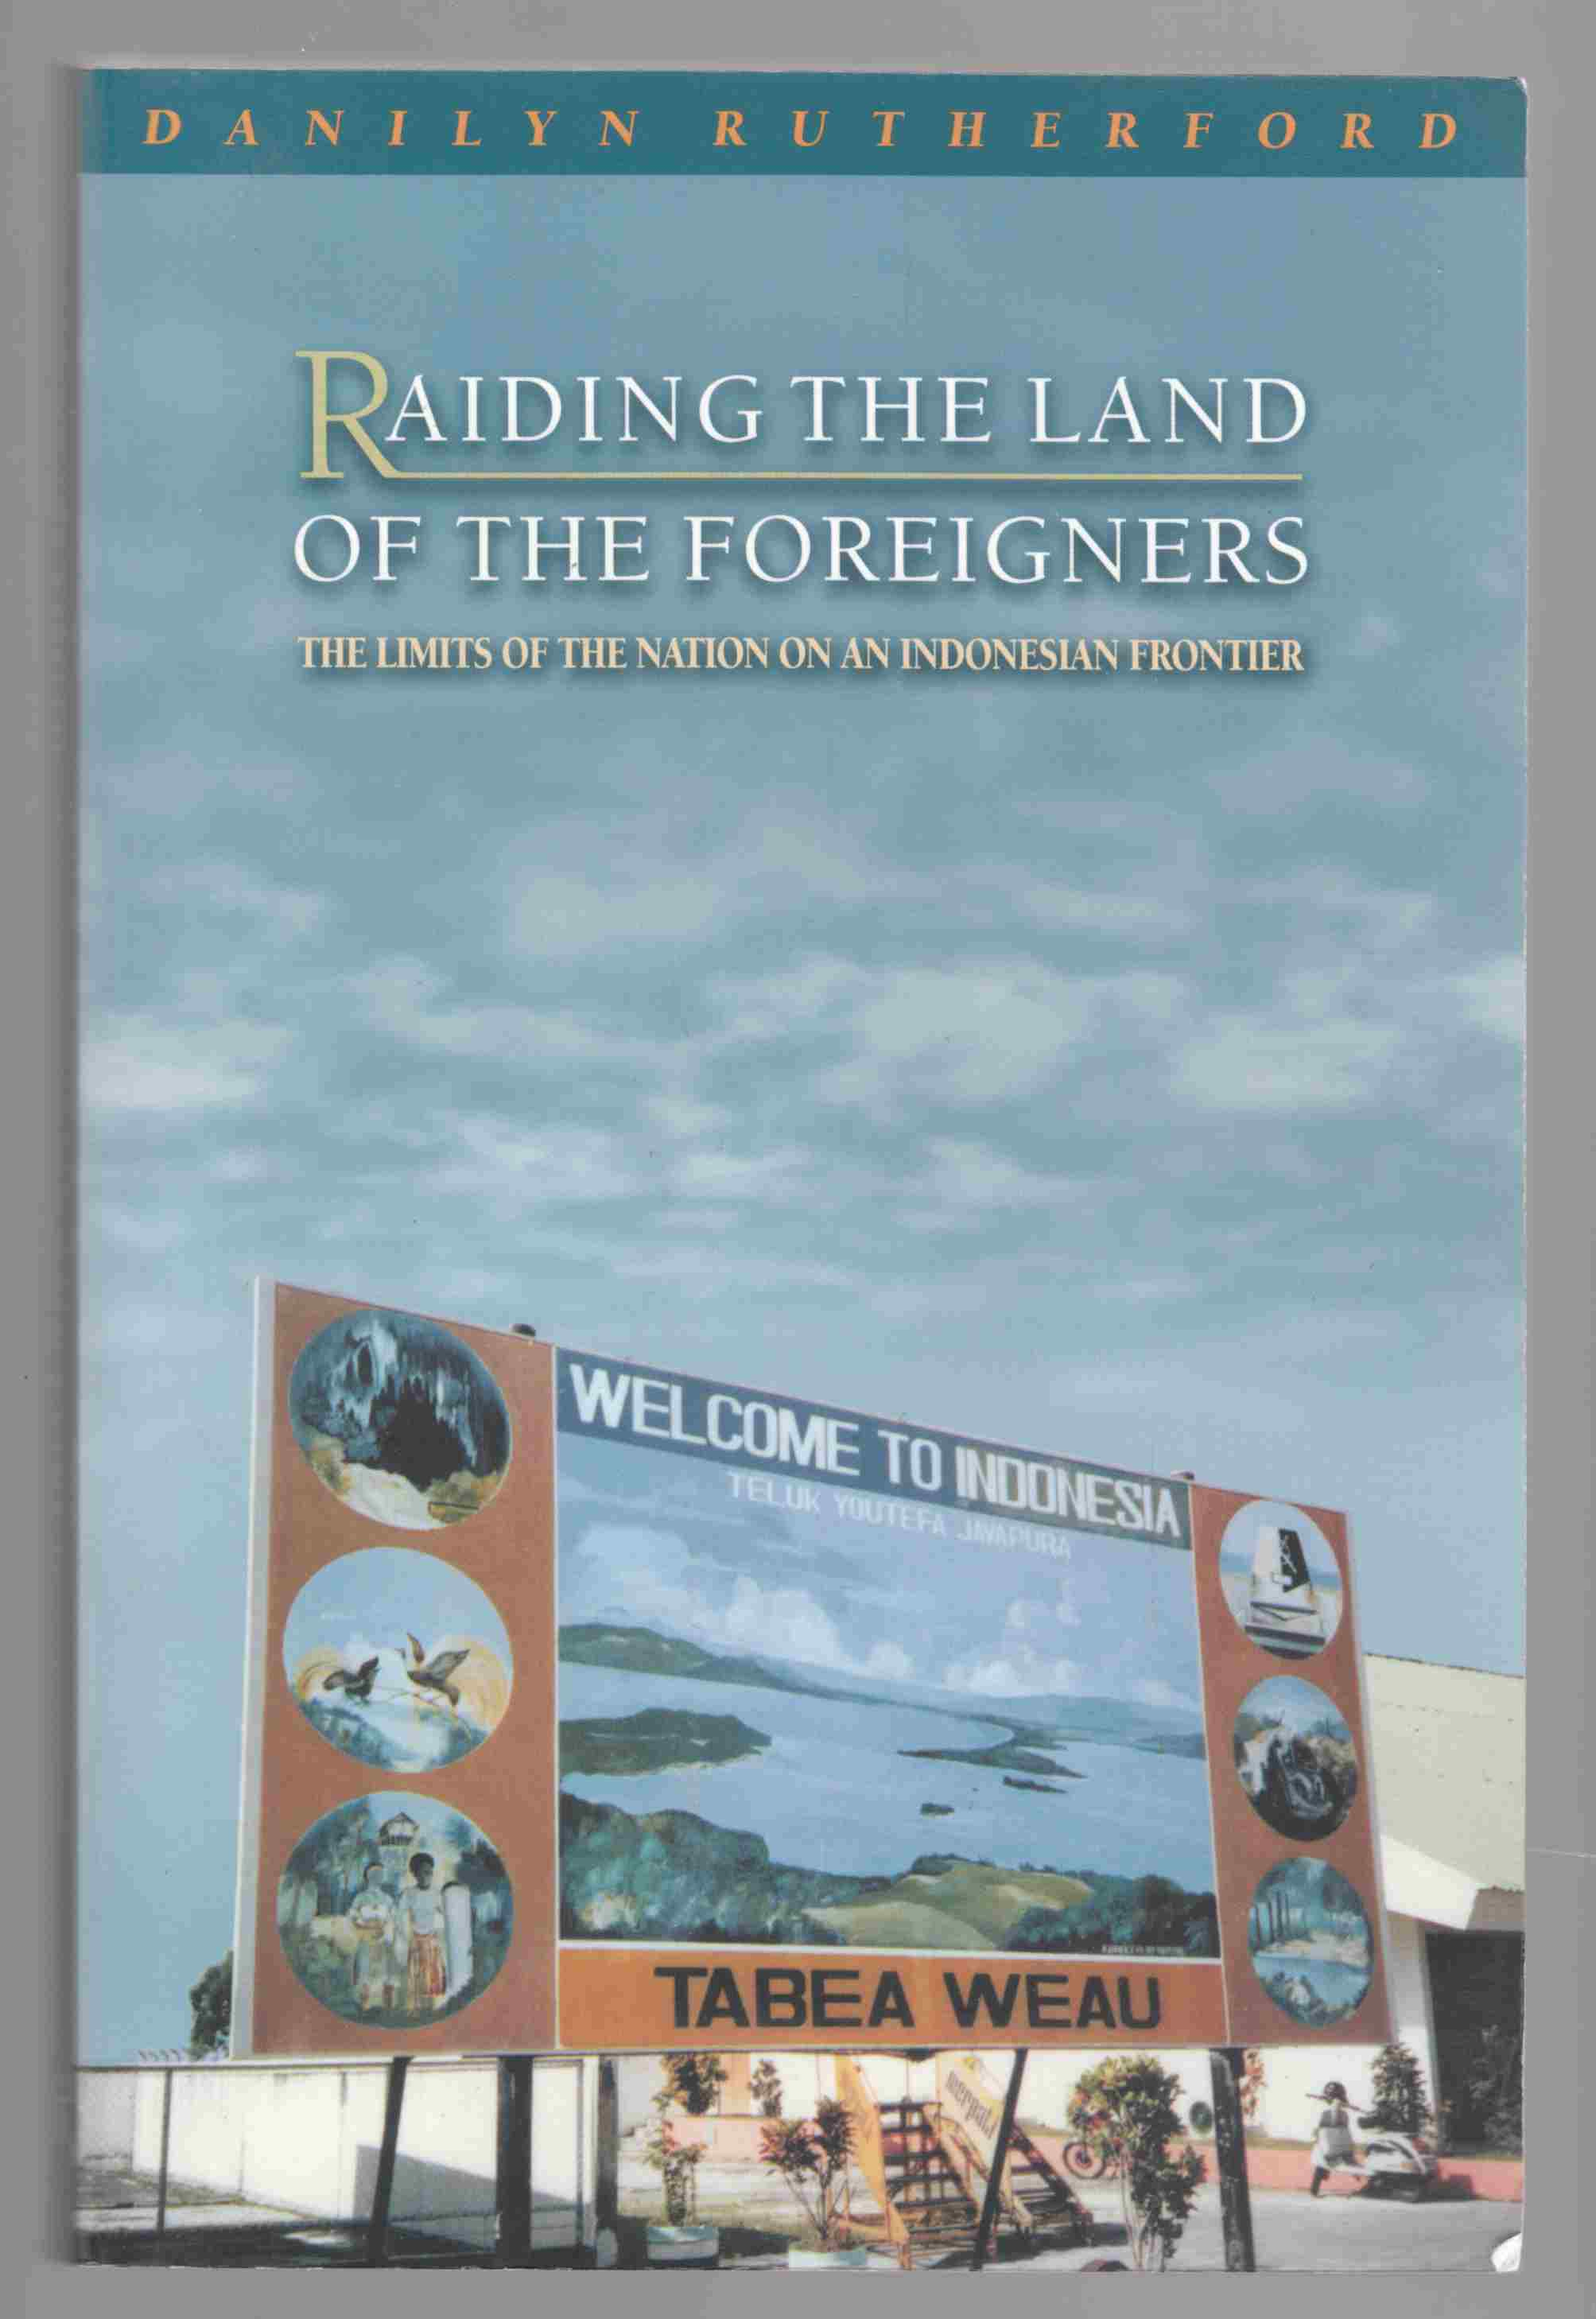 Image for Raiding the Land of the Foreigners The Limits of the Nation on an Indonesian Frontier